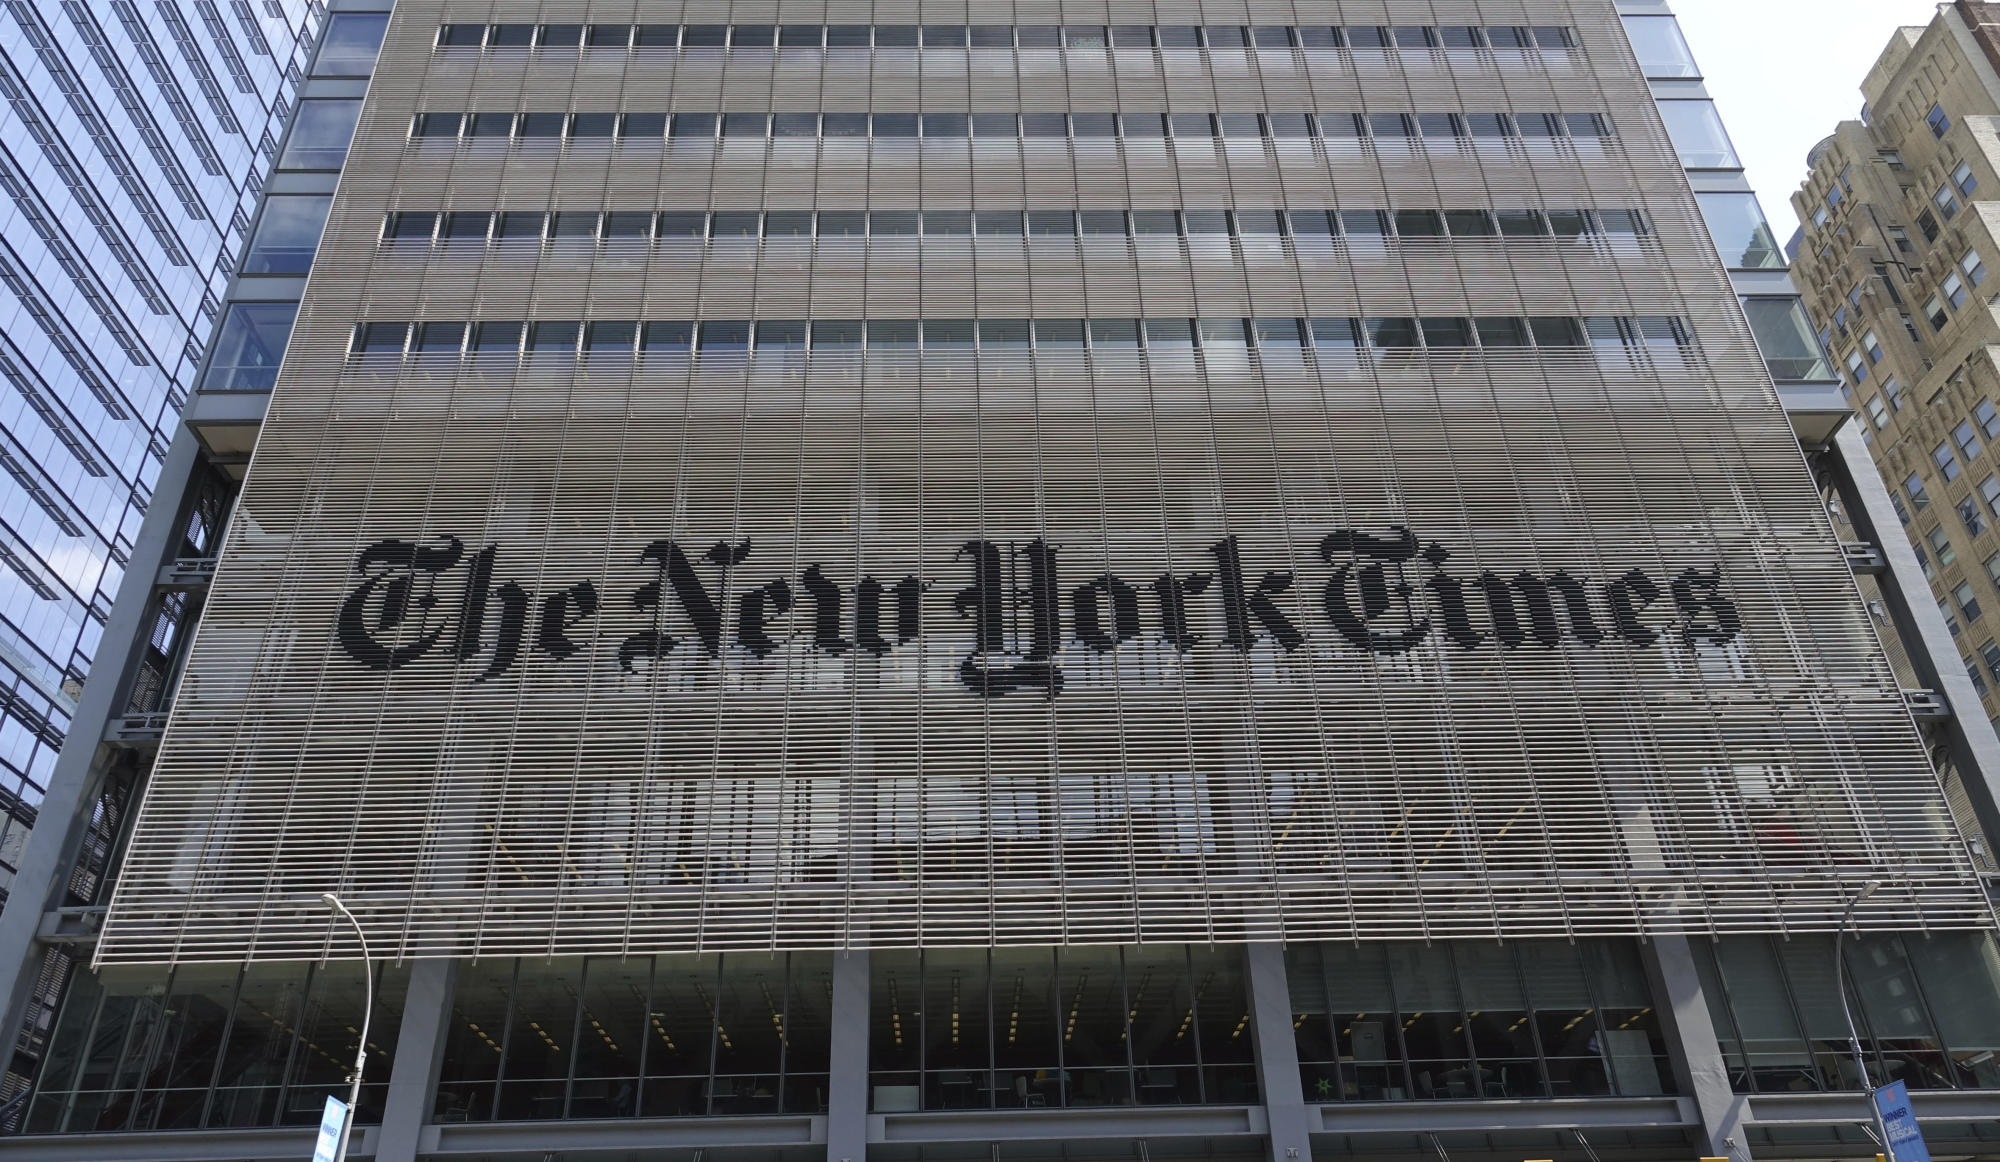 Two New York Times Journalists at the Center of Separate Controversies Leave the Company